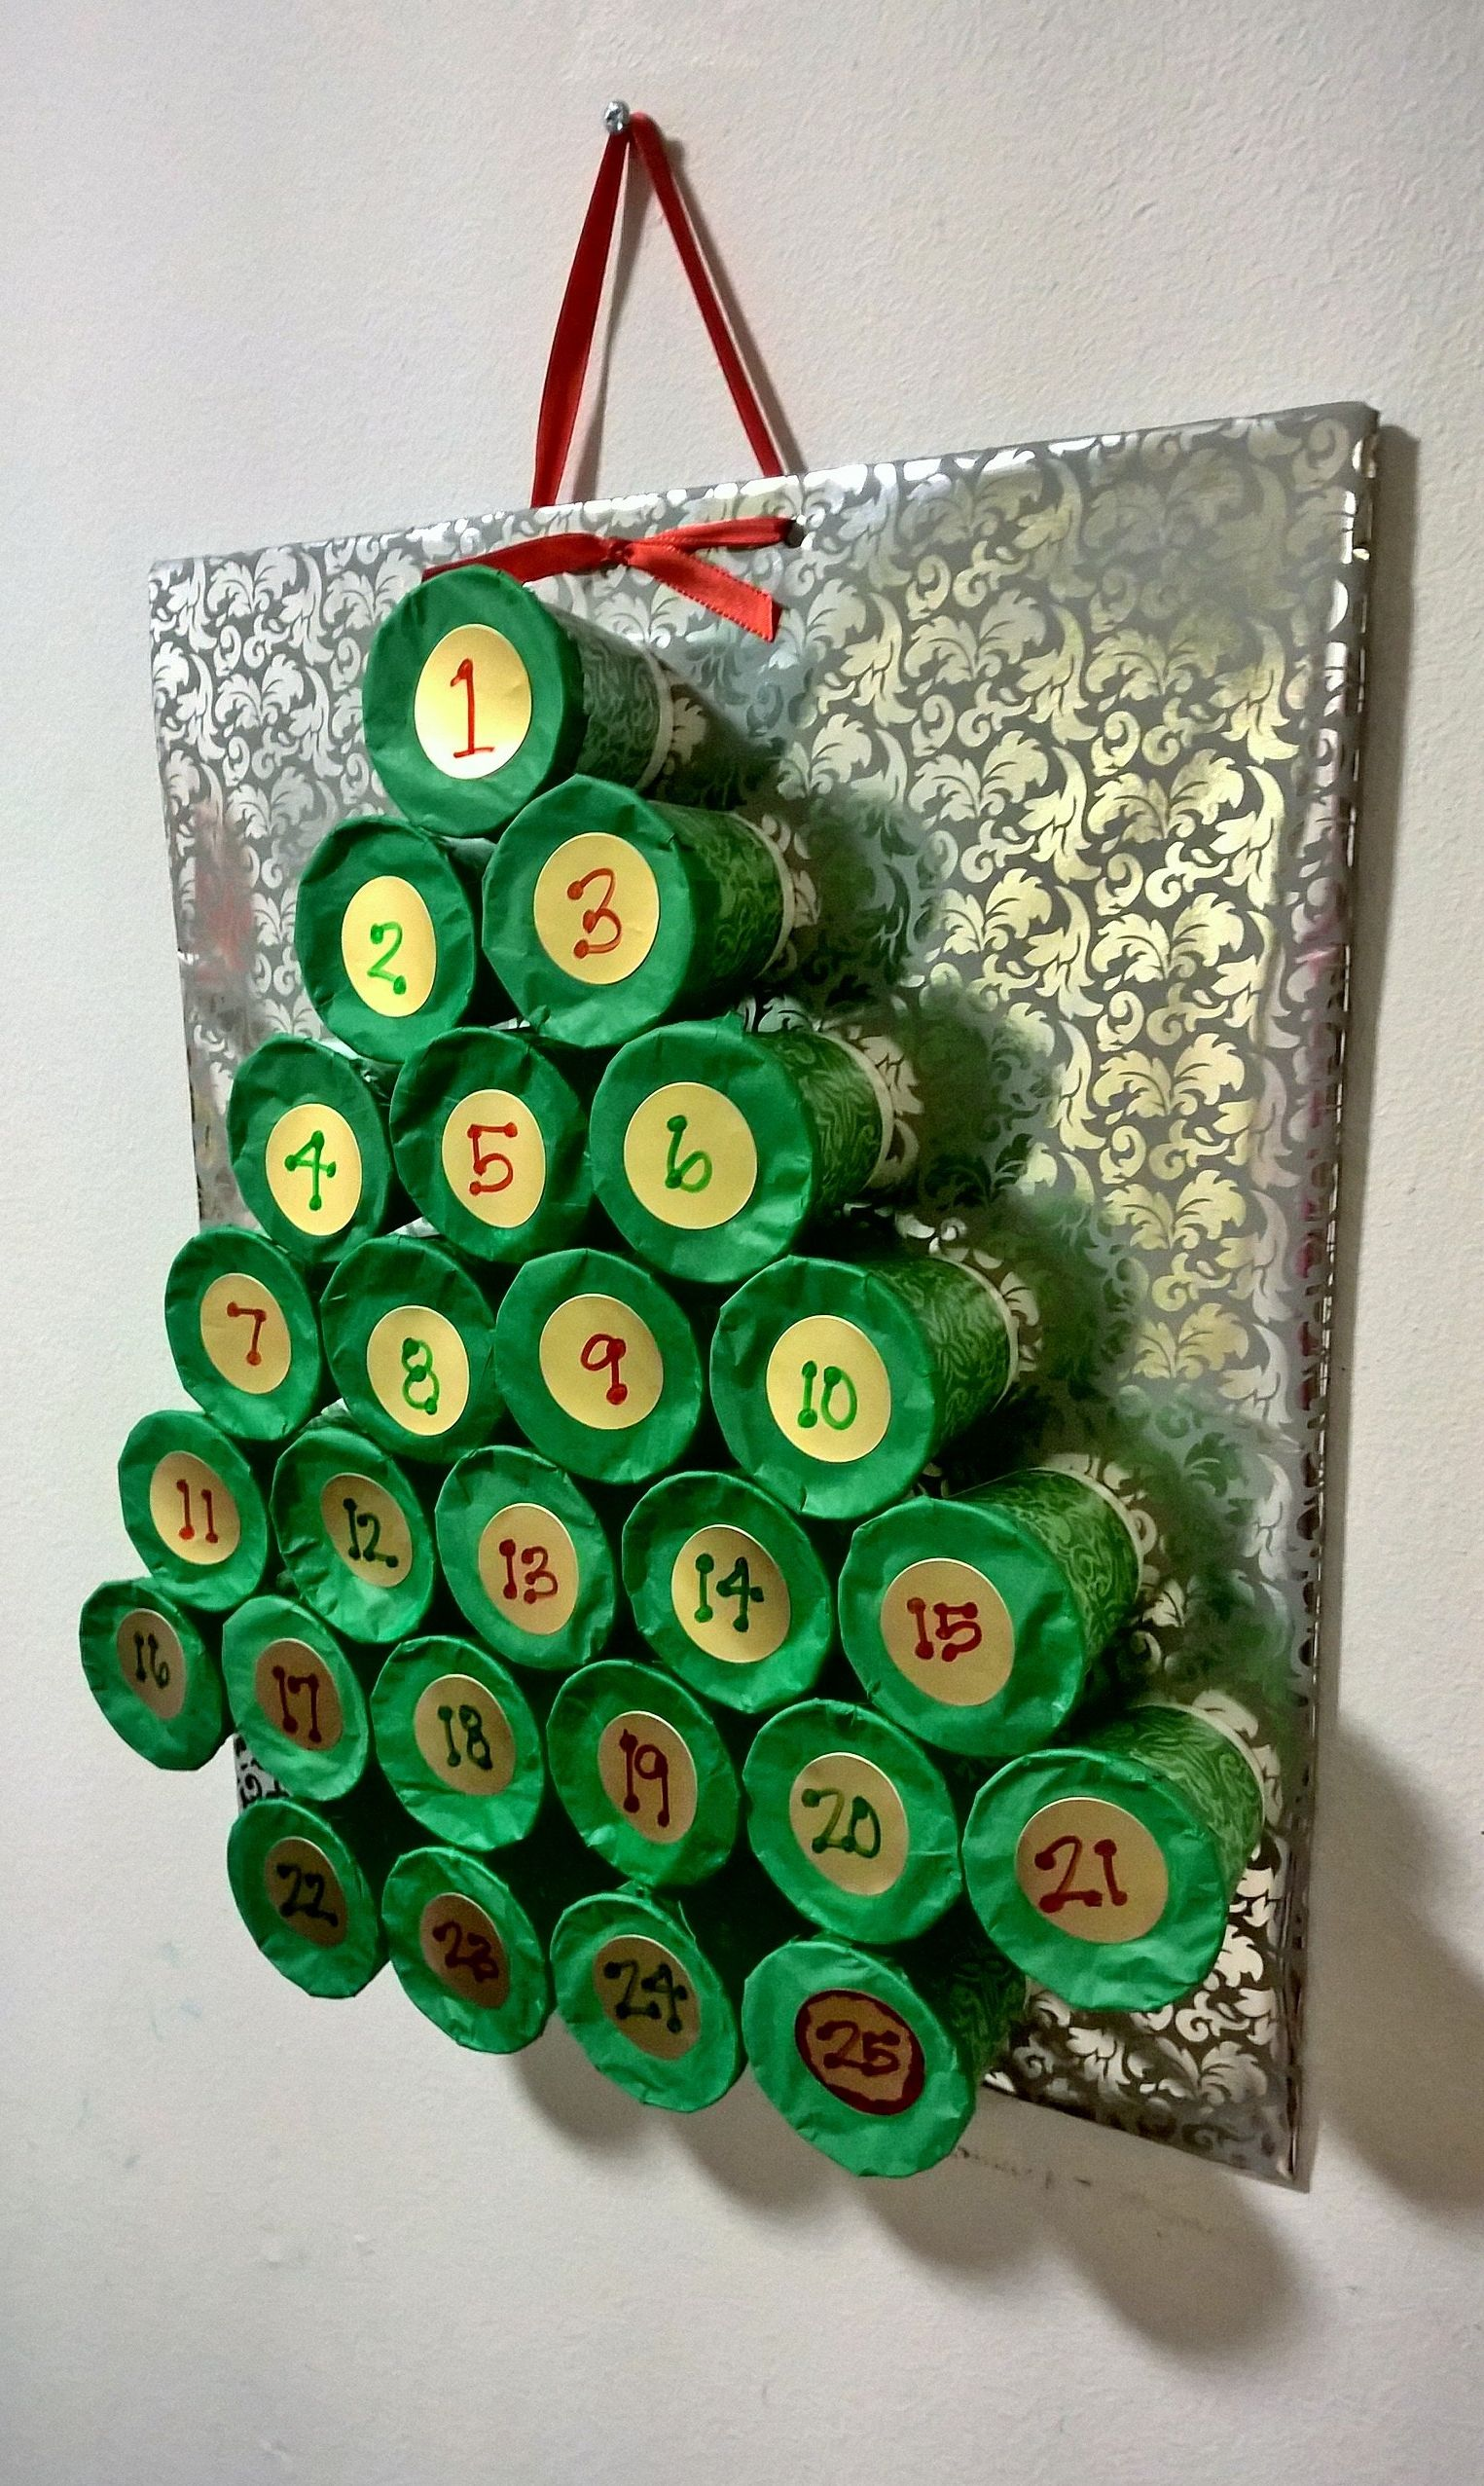 Diy Advent Calendar Made With Dixie Cups Advent Calendars For Kids